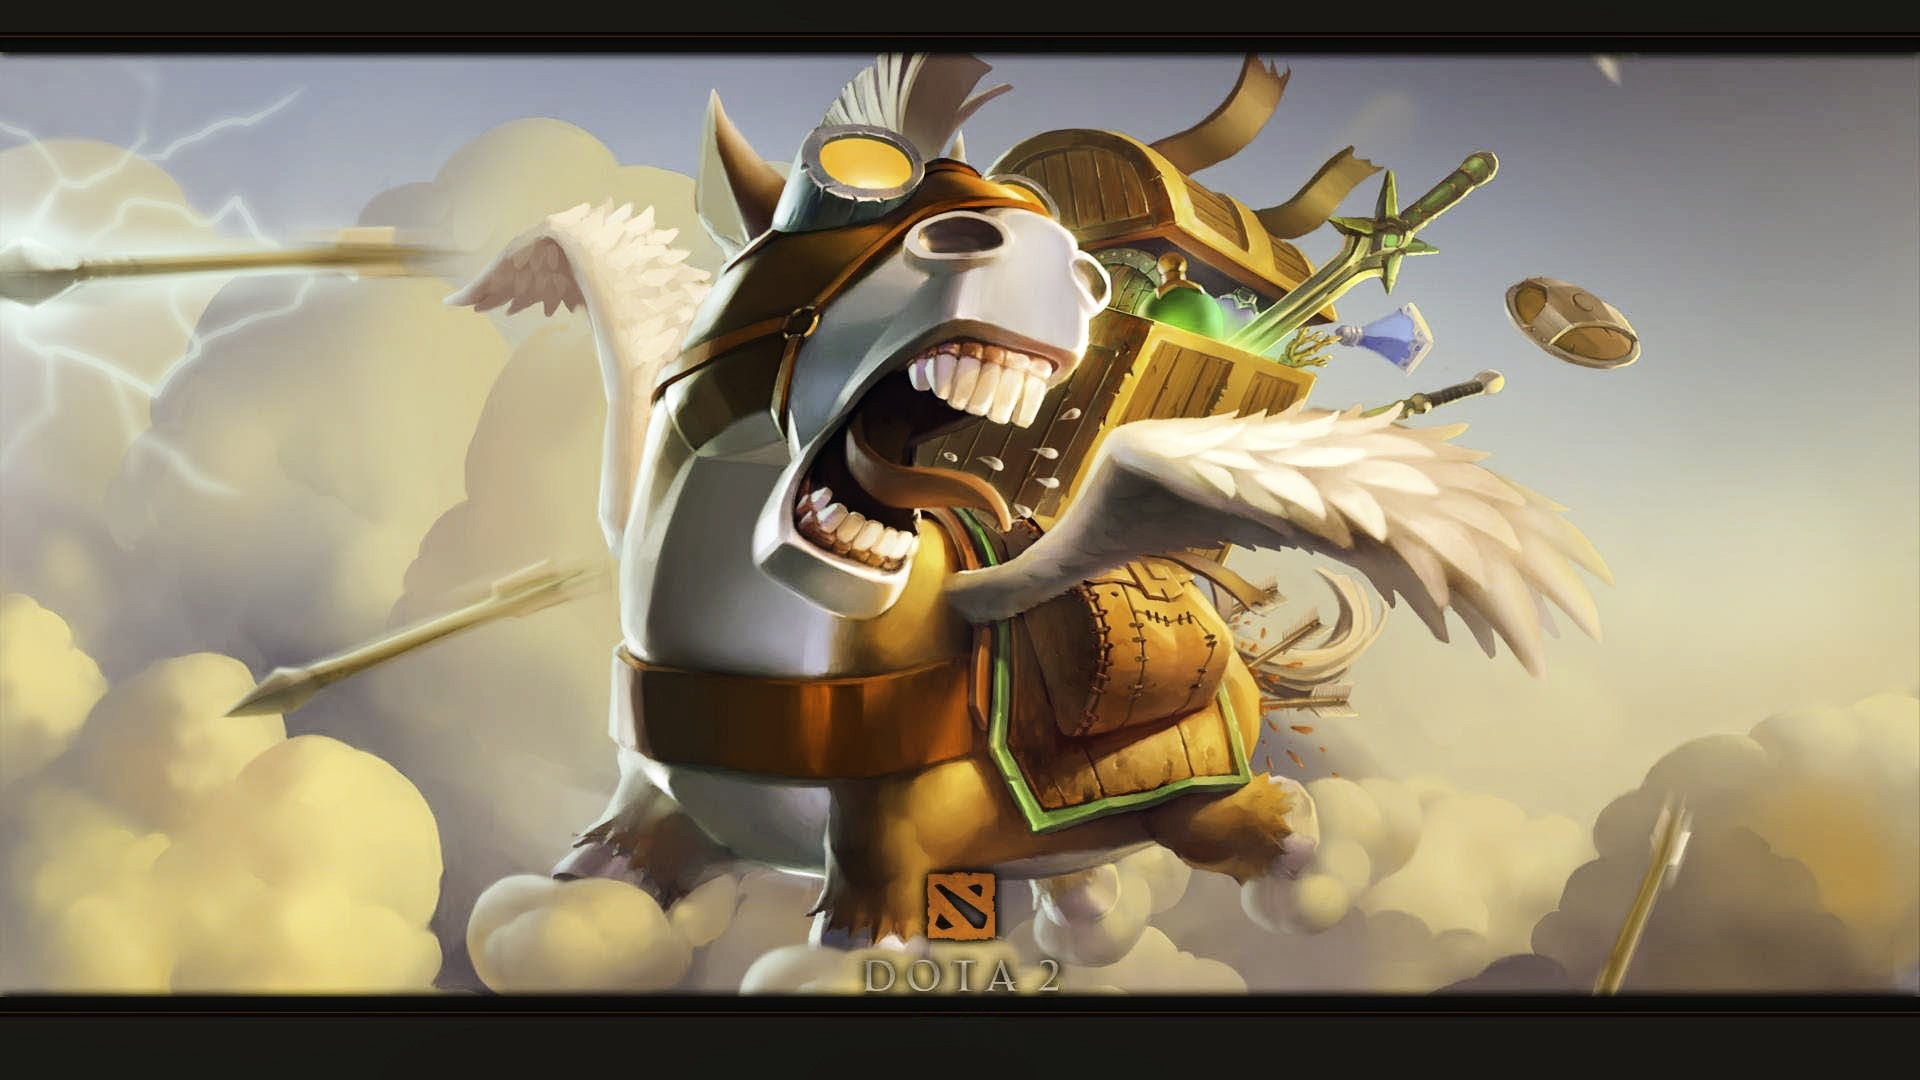 General 1920x1080 Dota 2 Dota 2 Courier creature PC gaming